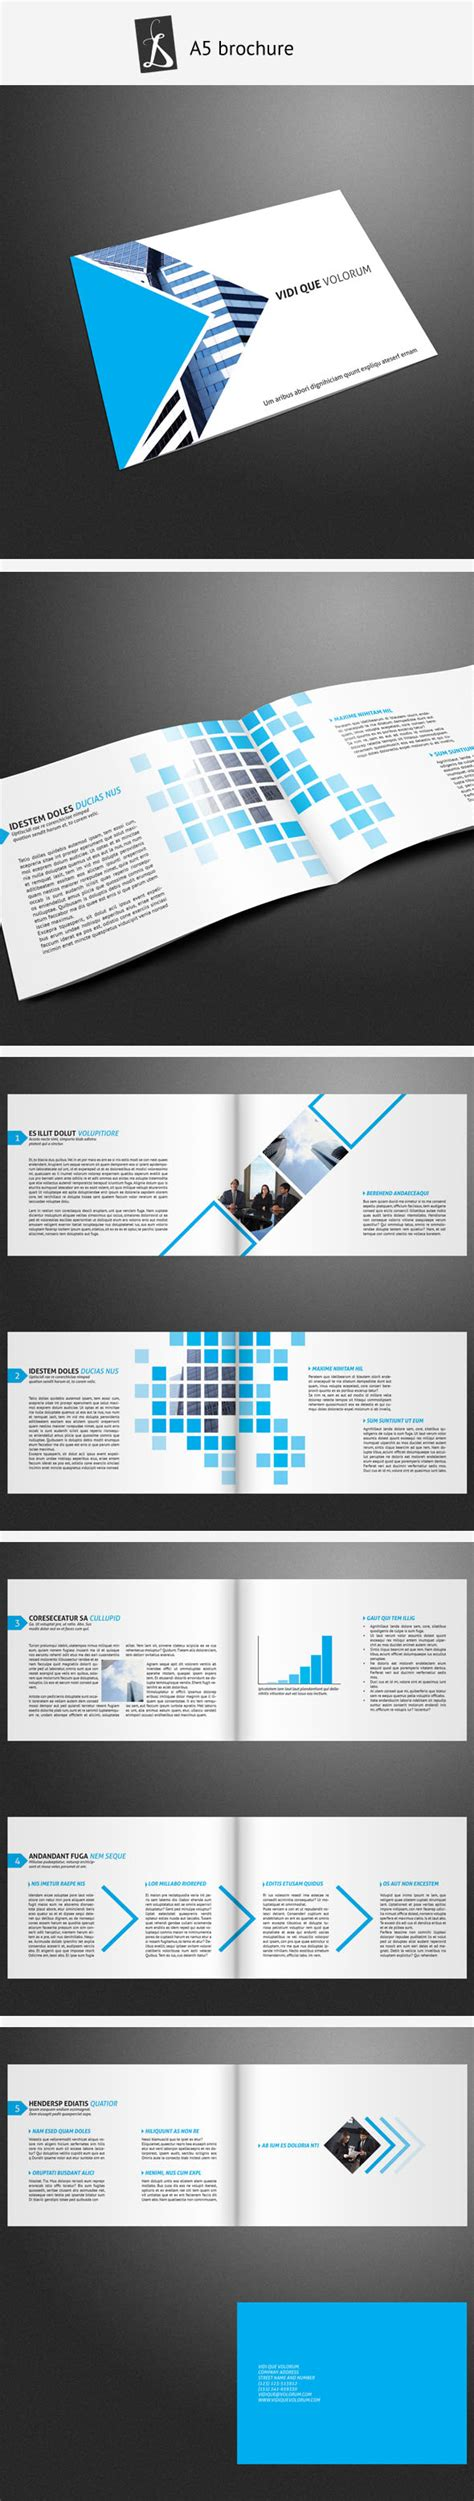 A5 Brochure 7 By Demorfoza On Deviantart A5 Brochure Template Indesign